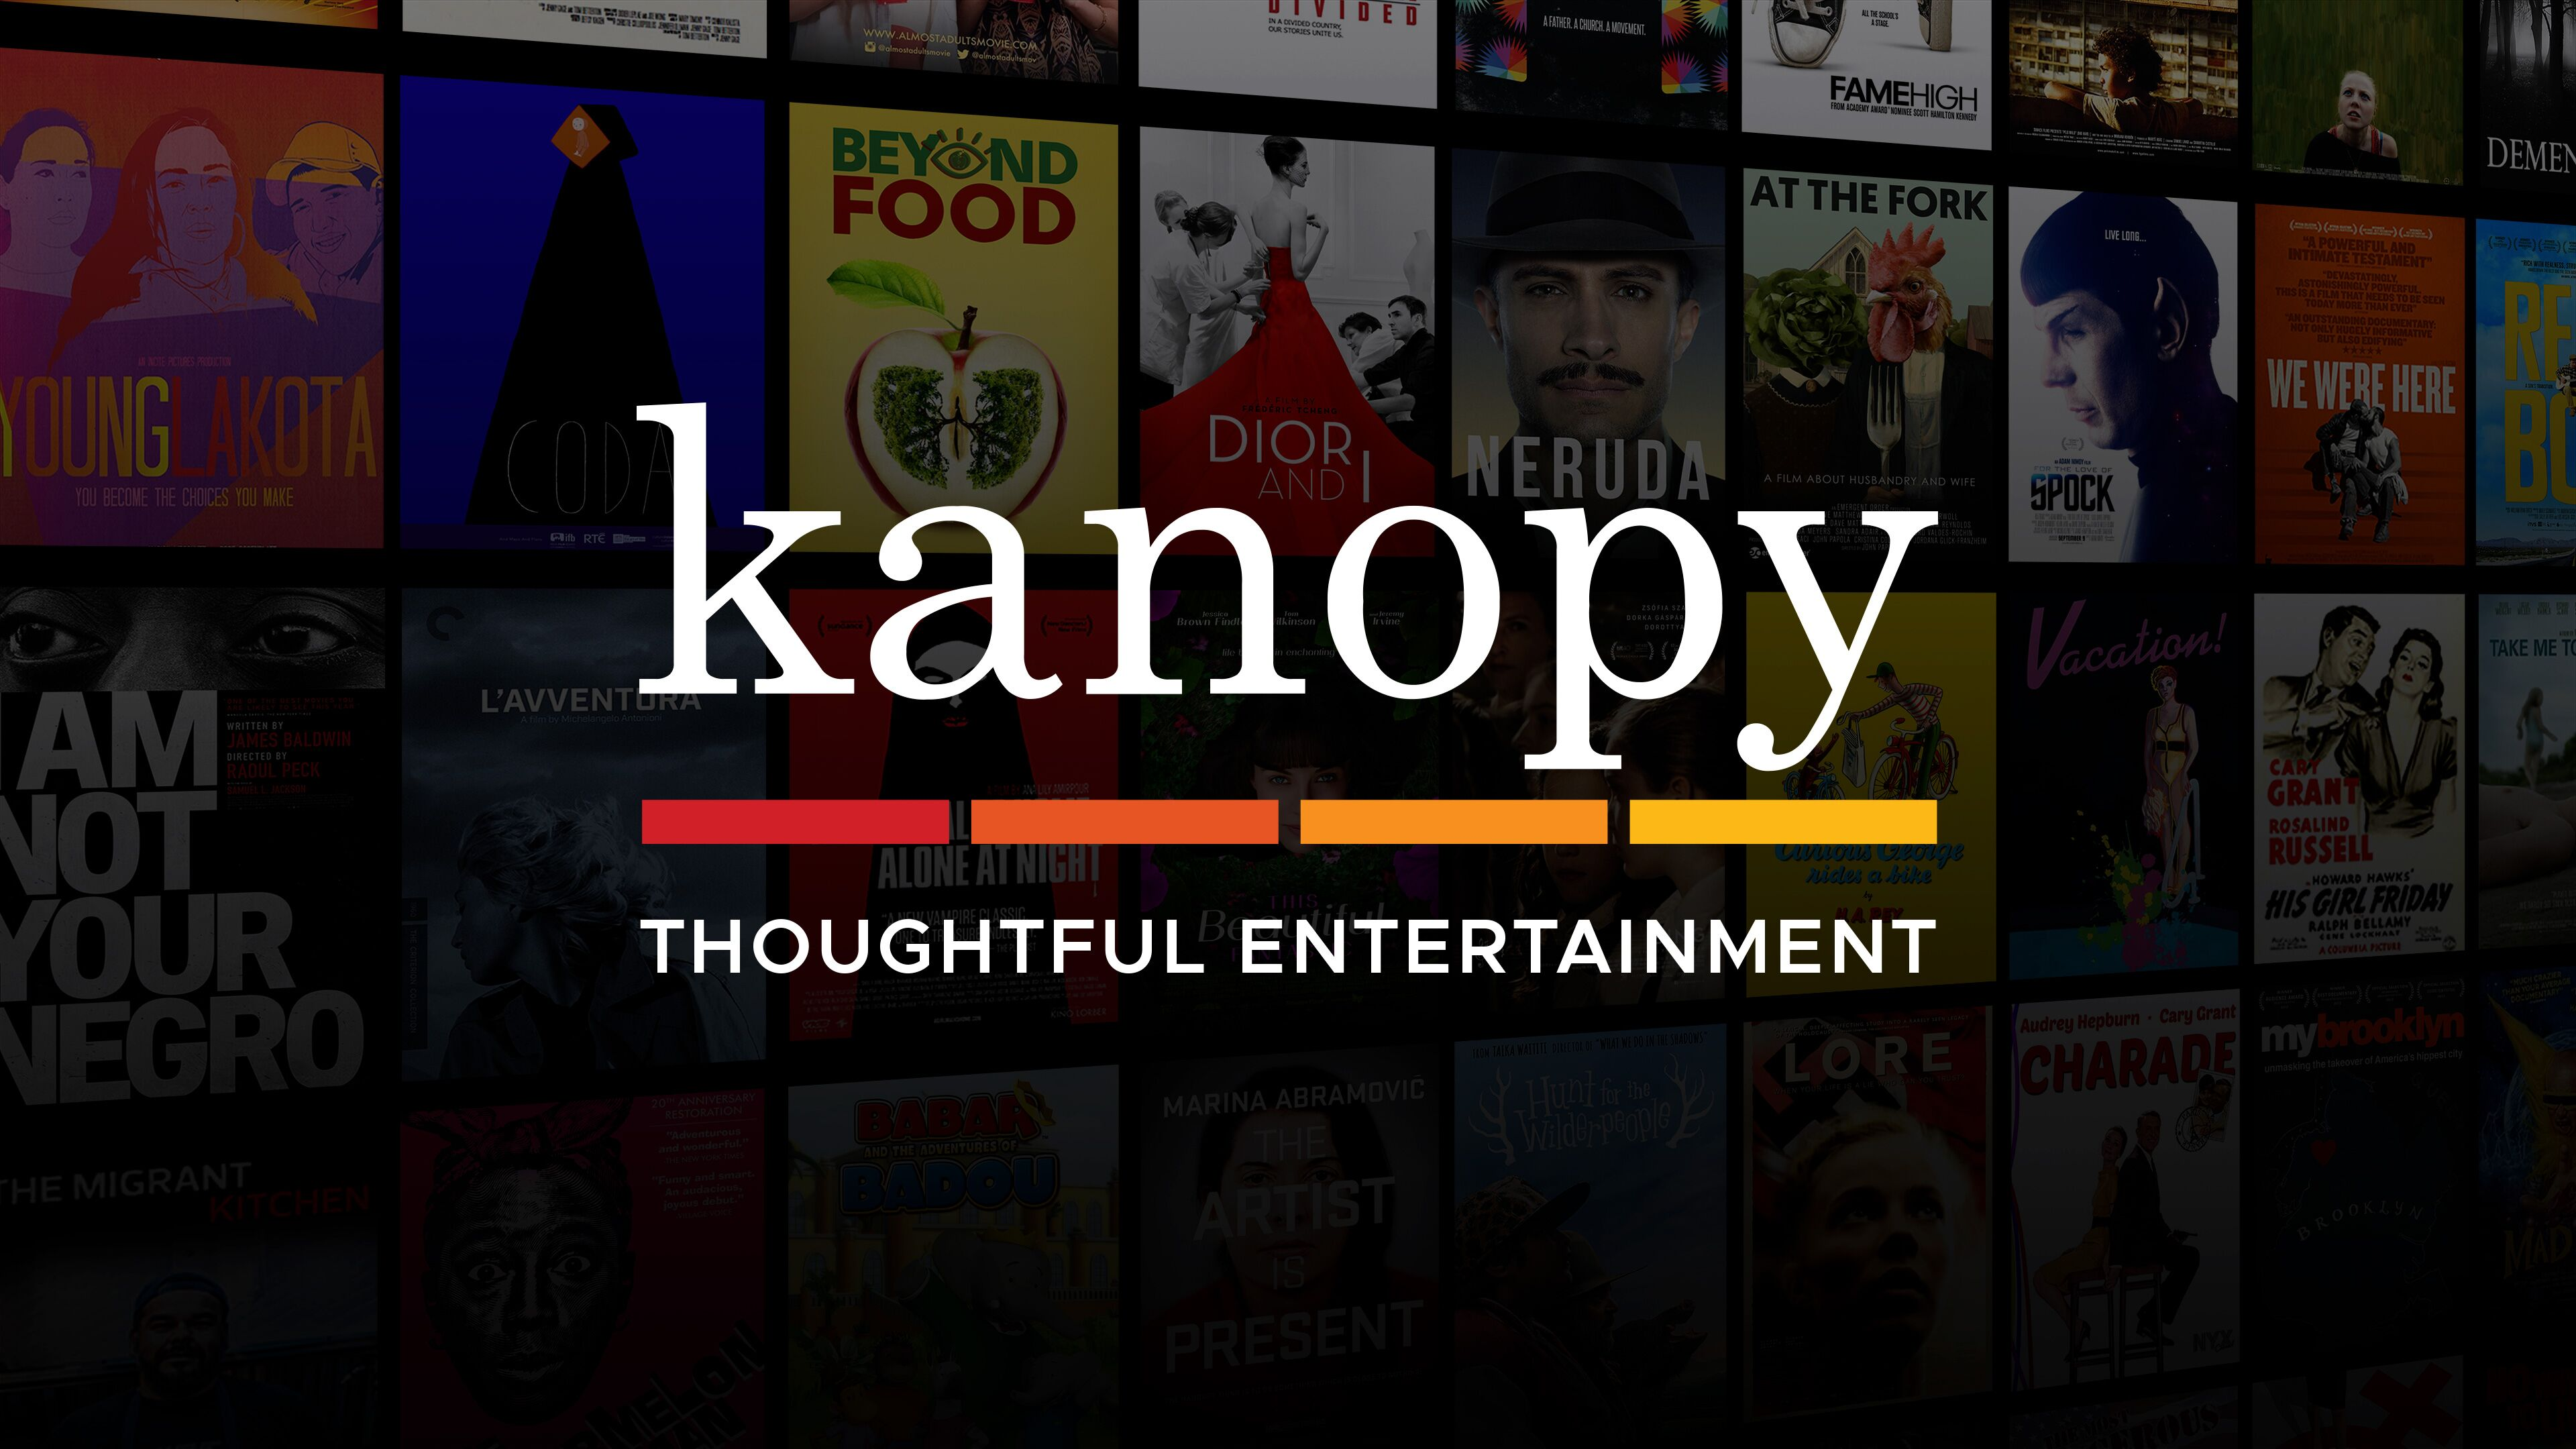 Kanopy. The world's finest cinema now streaming free with your Library card. For more information call 405-222-6075